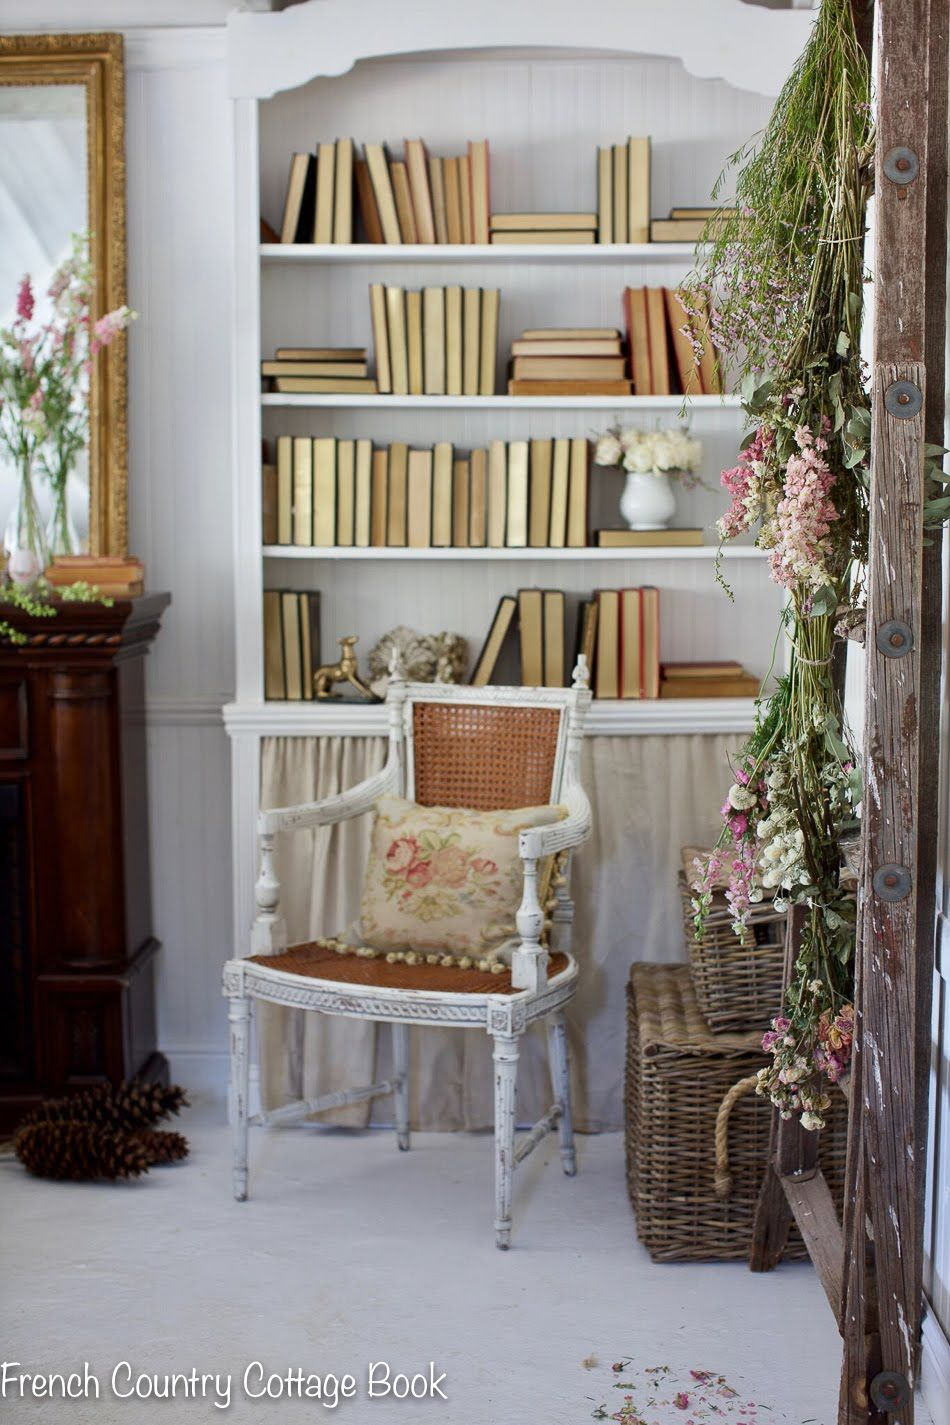 In The Little Cottage 5 Minute Spring Decorating French Country